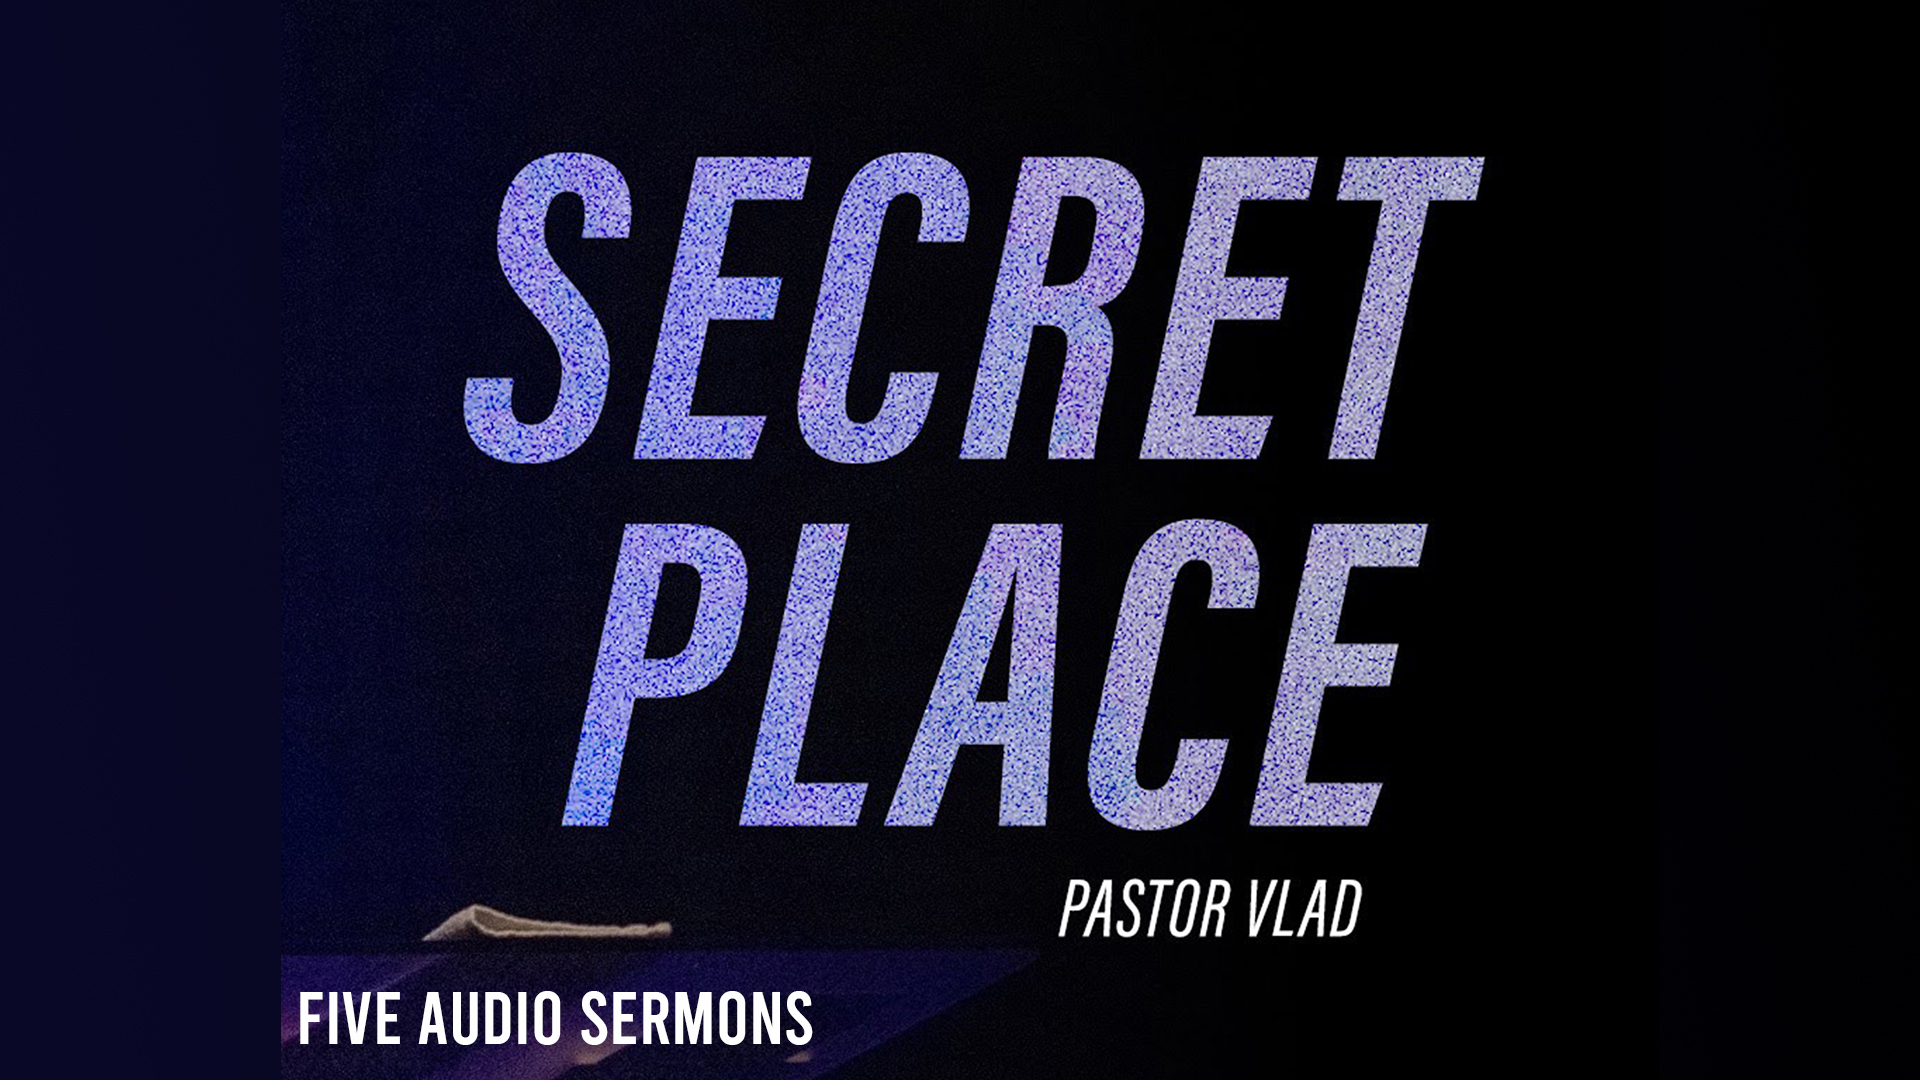 https://vladimirsavchuk.com/resources/secret-place-audio-series/